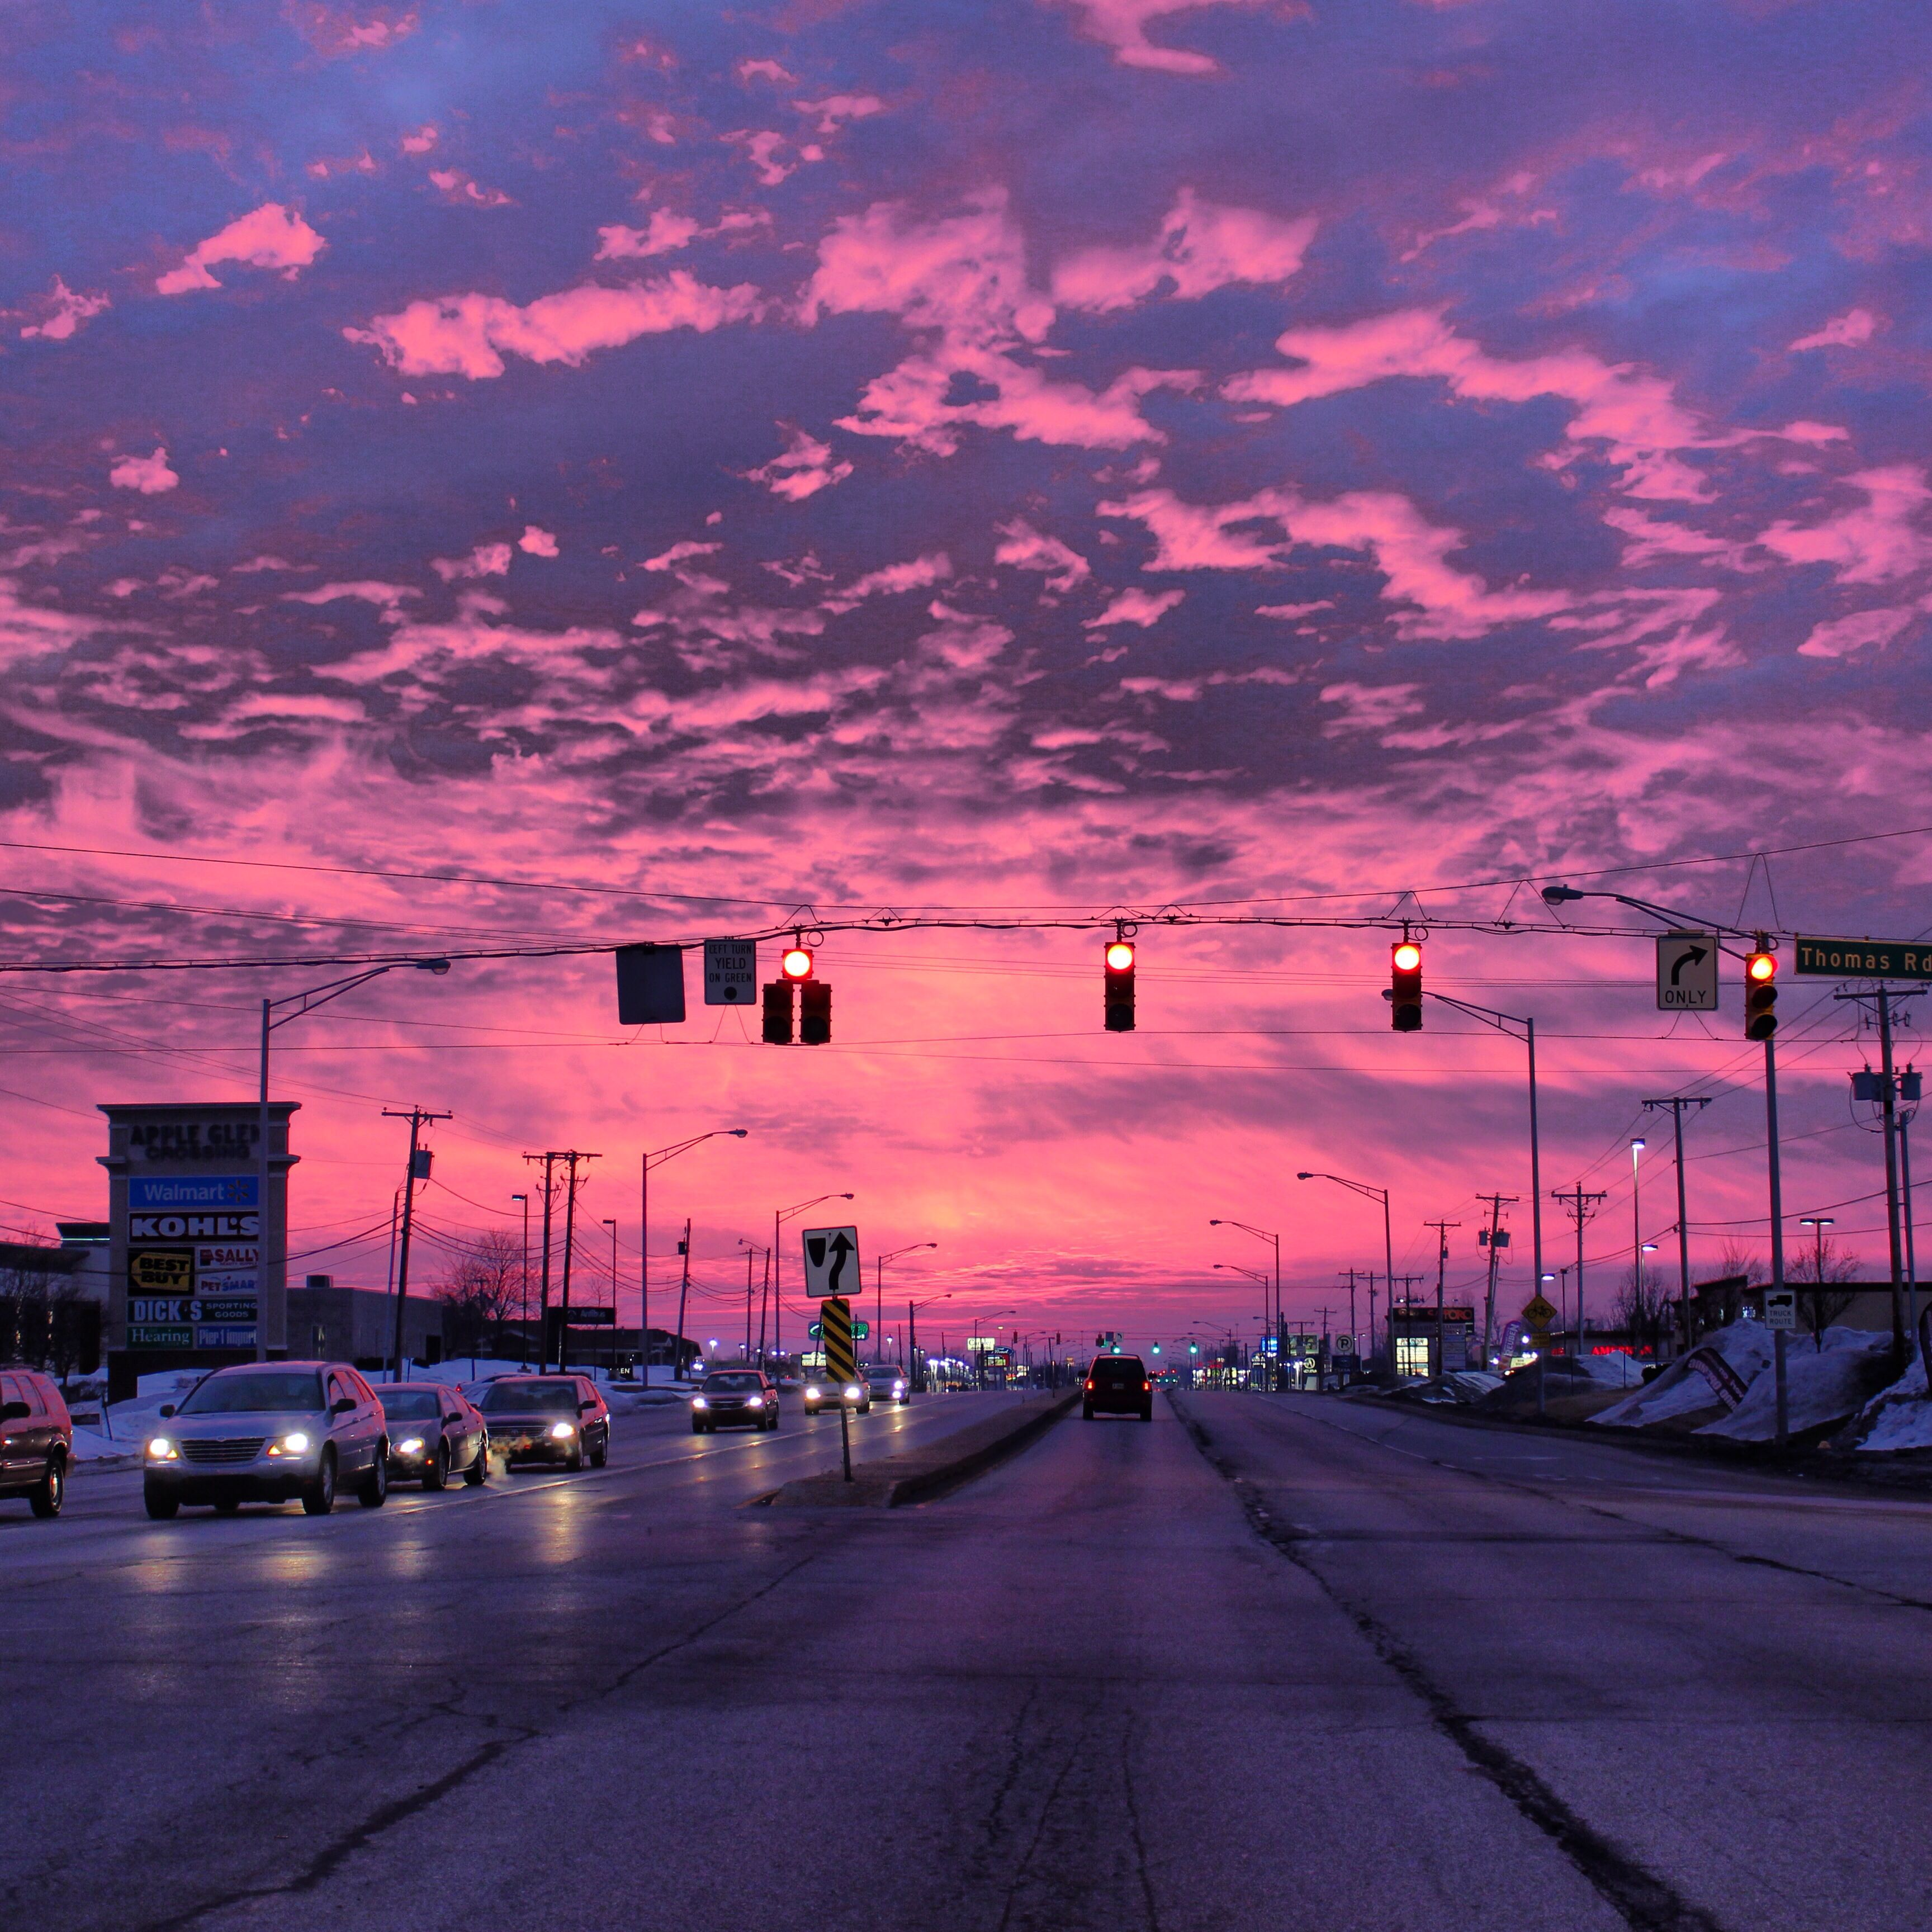 Sunset In This Town Sky Aesthetic Pretty Sky Aesthetic Pictures